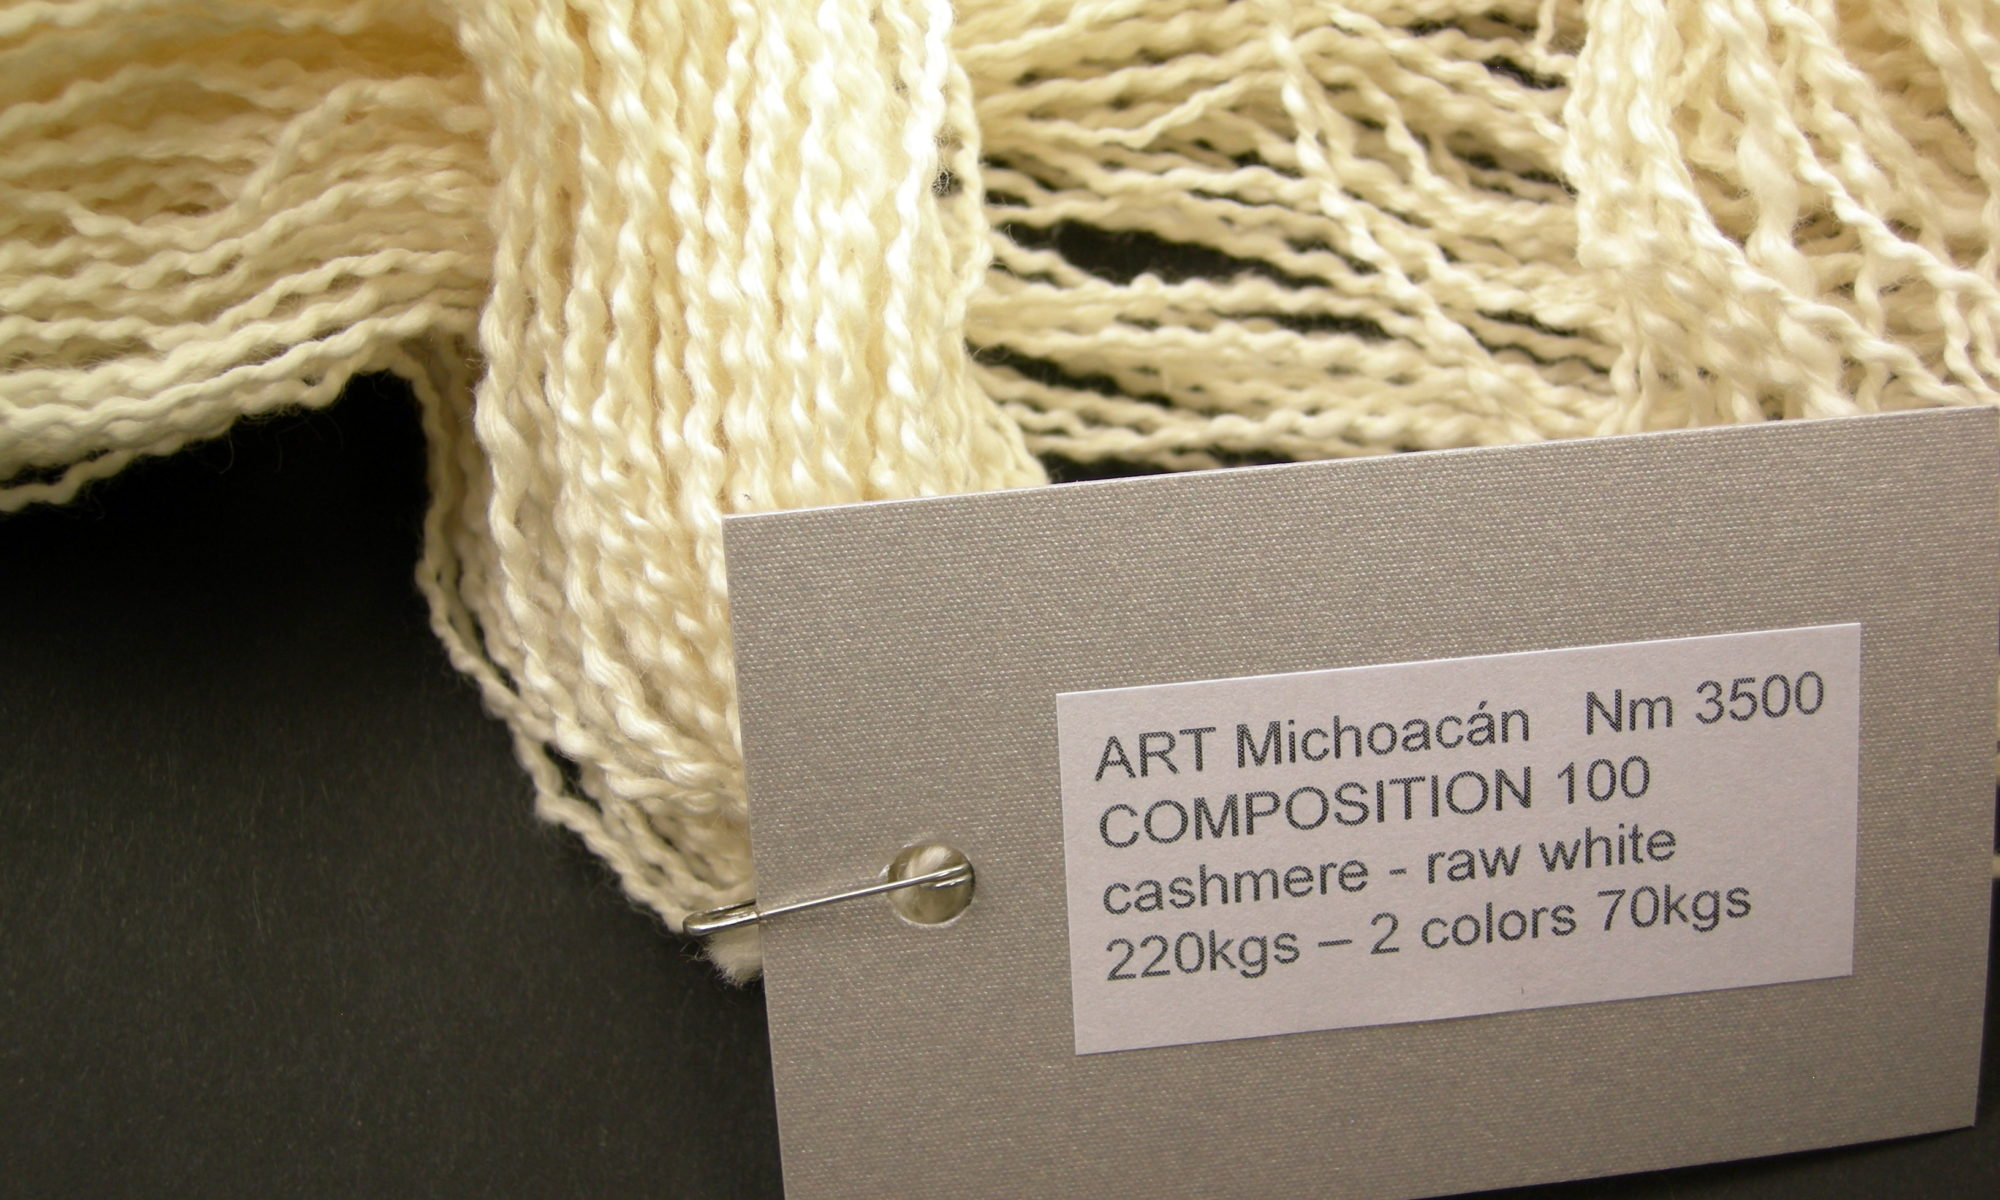 ART Michoacán Nm 3500 COMPOSITION 100 cashmere - raw white 220kgs – 2 colors 70kgs